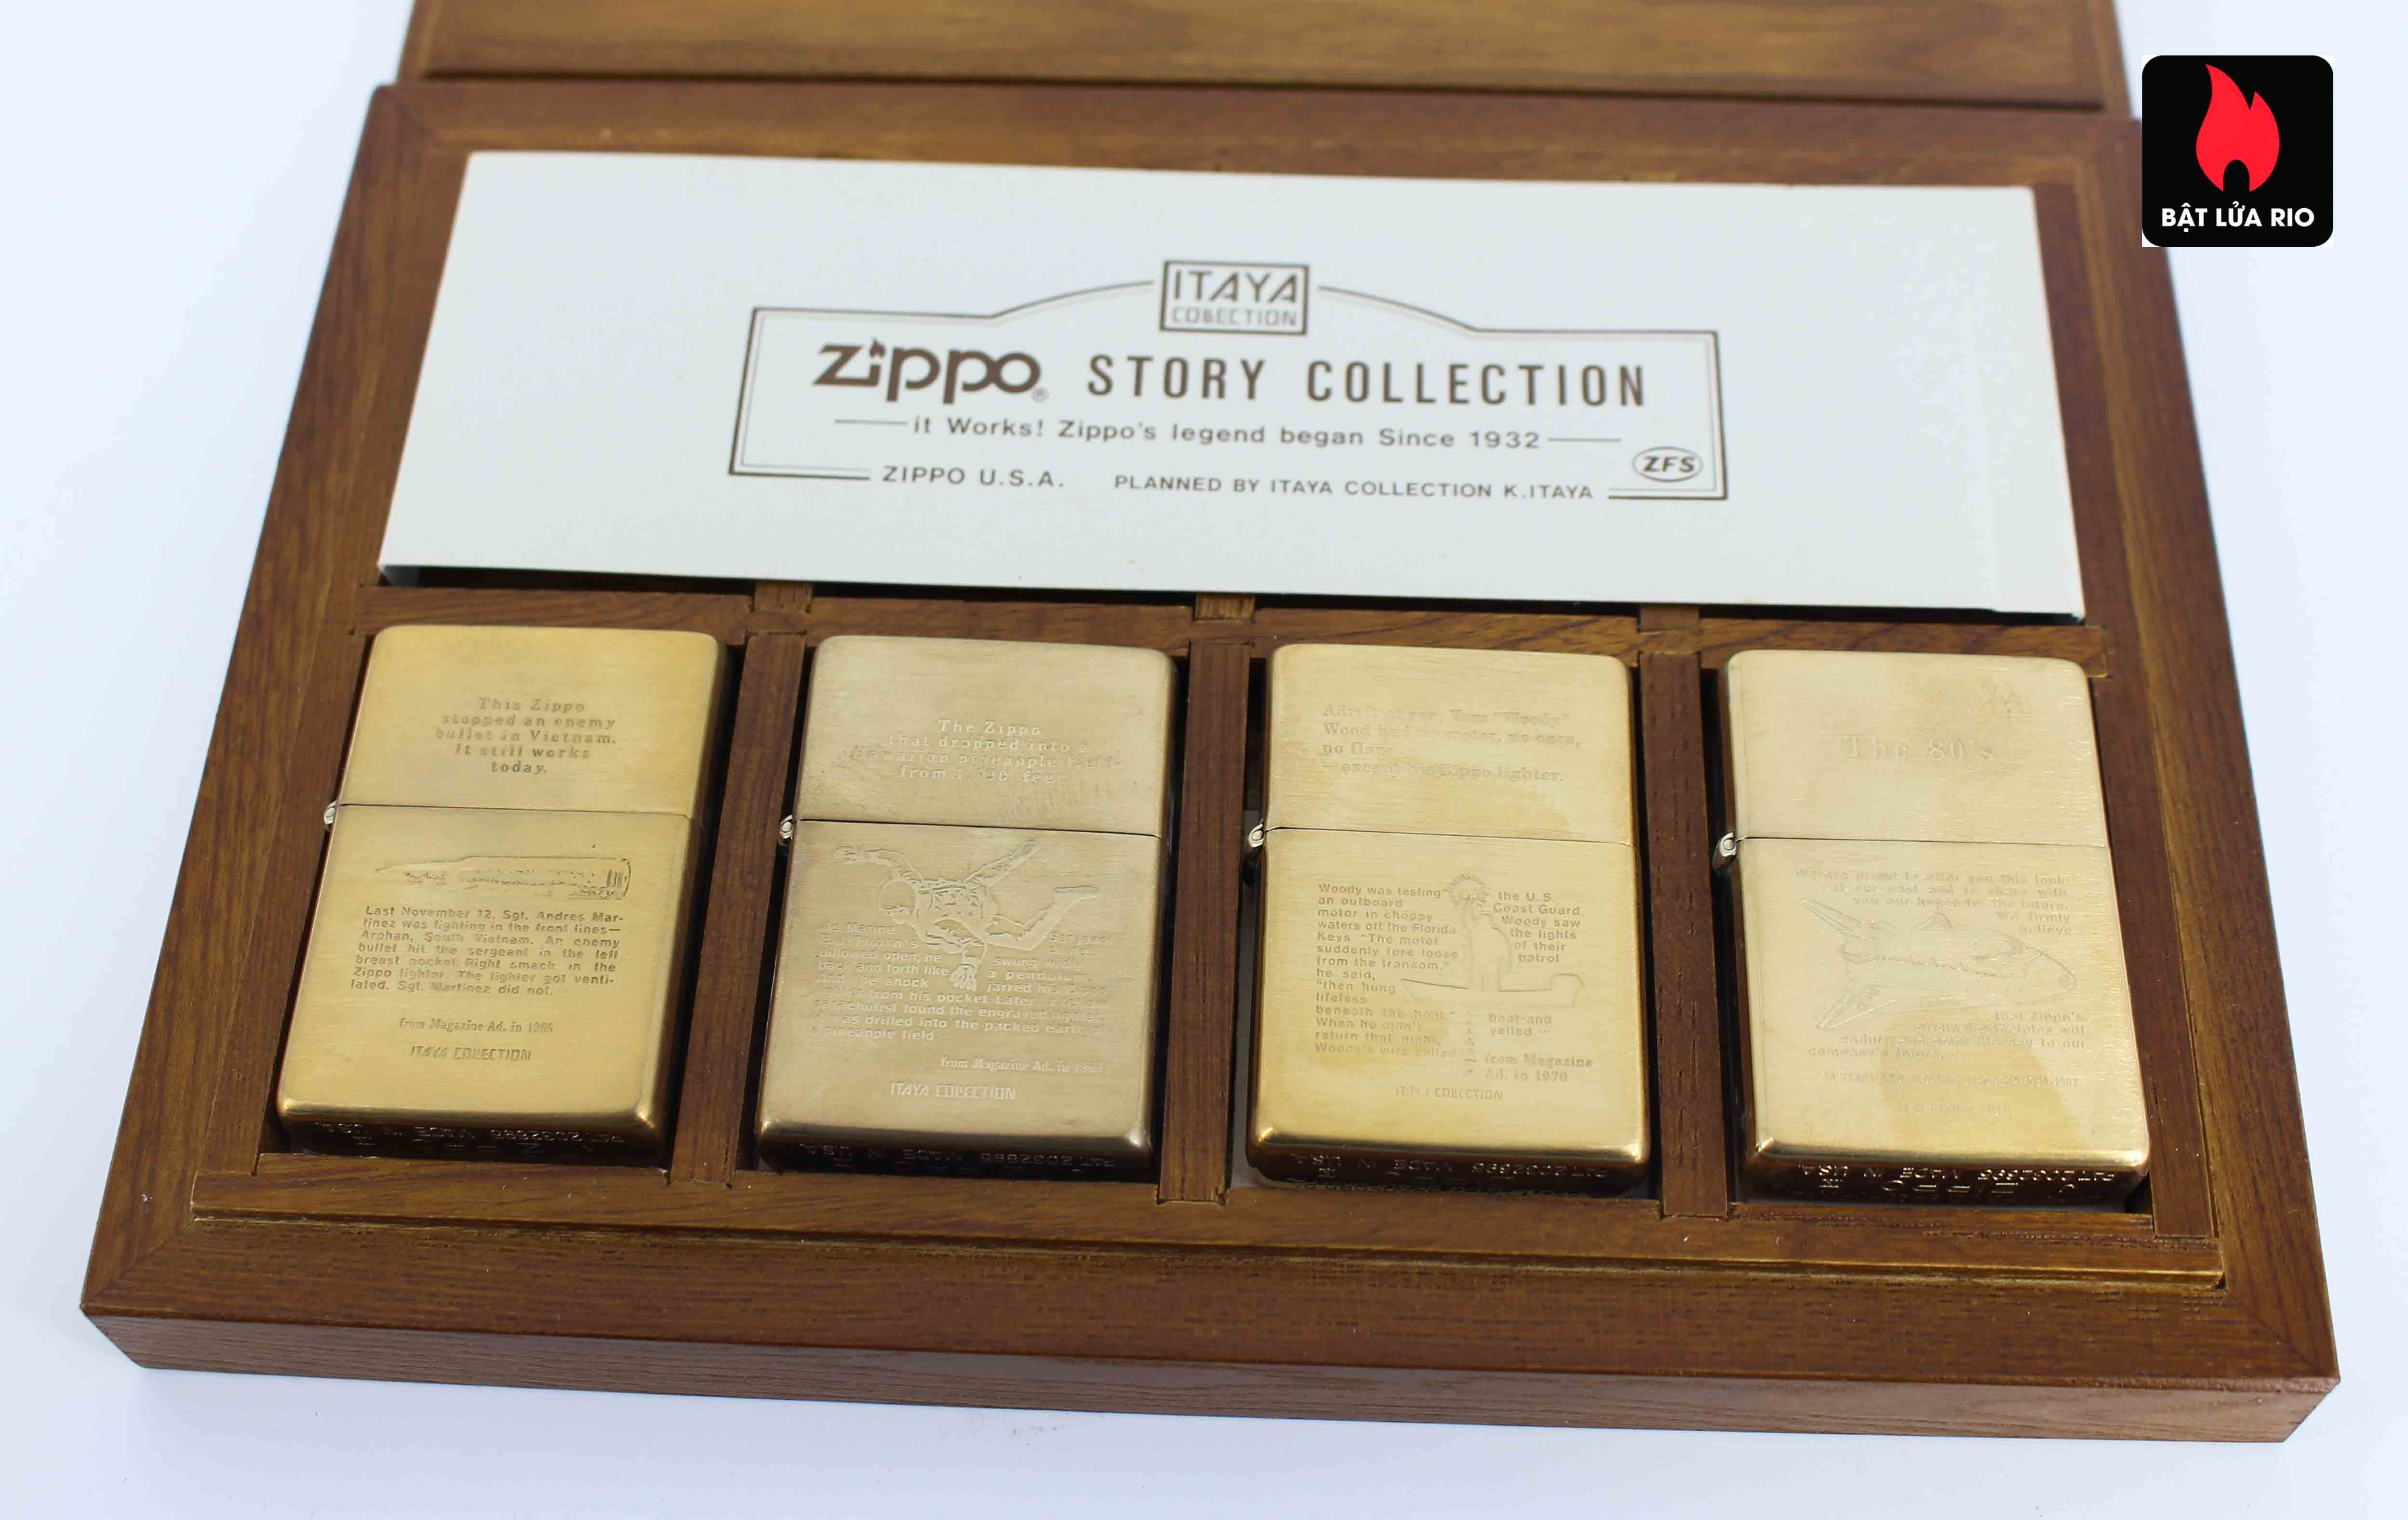 Zippo Serries 1993 - Itaya Colection - Zippo Story Collection 12